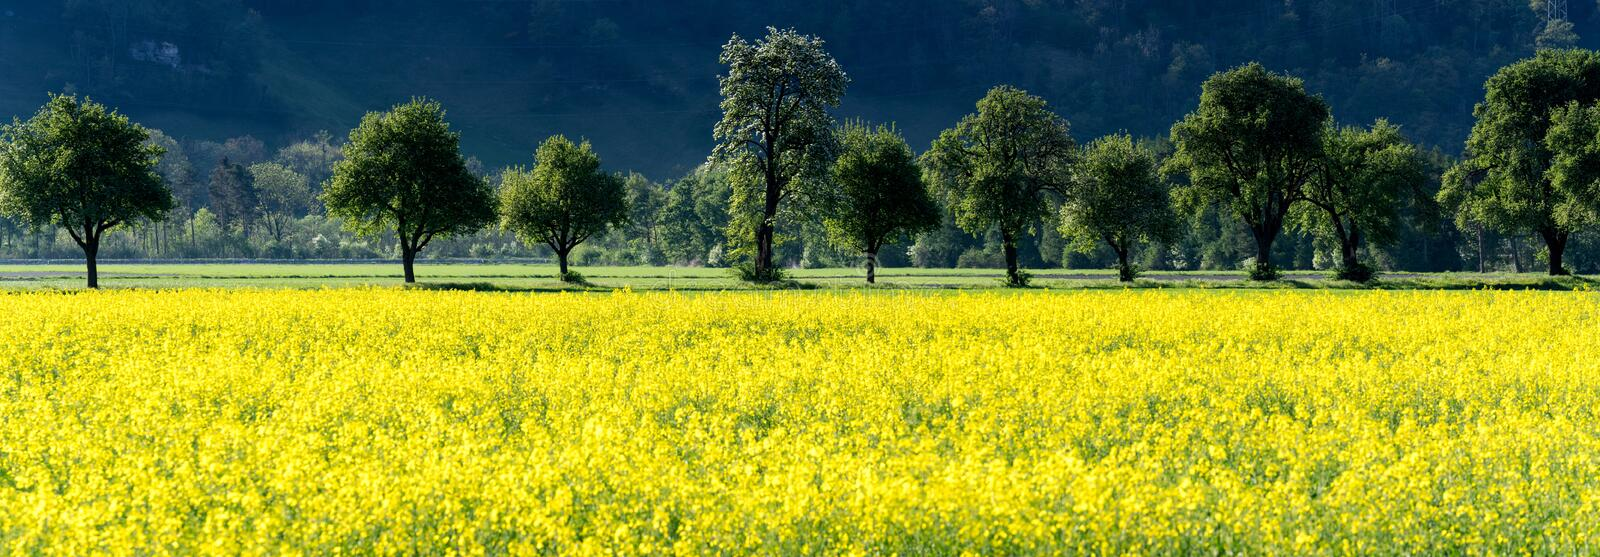 Panorama view of yellow rapeseed fields and blossoming fruit orchard trees in spring royalty free stock images